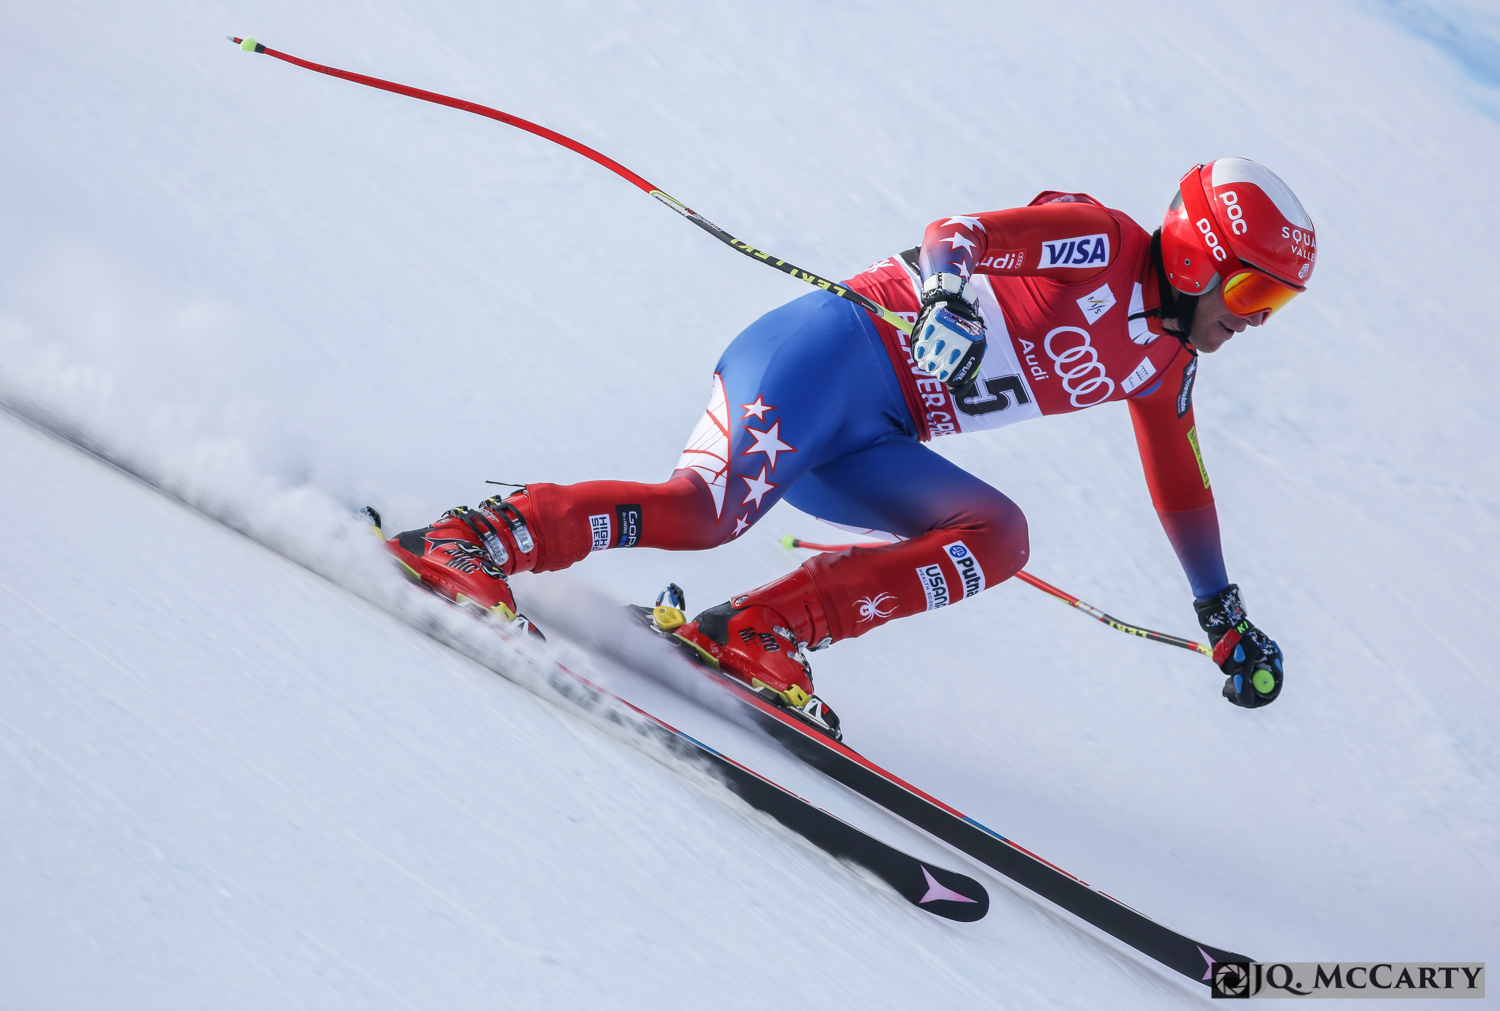 Marco Sullivan, of the United States, speeds down the course during the second day of training of the Birds of Prey World Cup downhill race Thursday in Beaver Creek. Sullivan finished 30th fastest on the day with a time of 1 minute, 45.50 seconds.